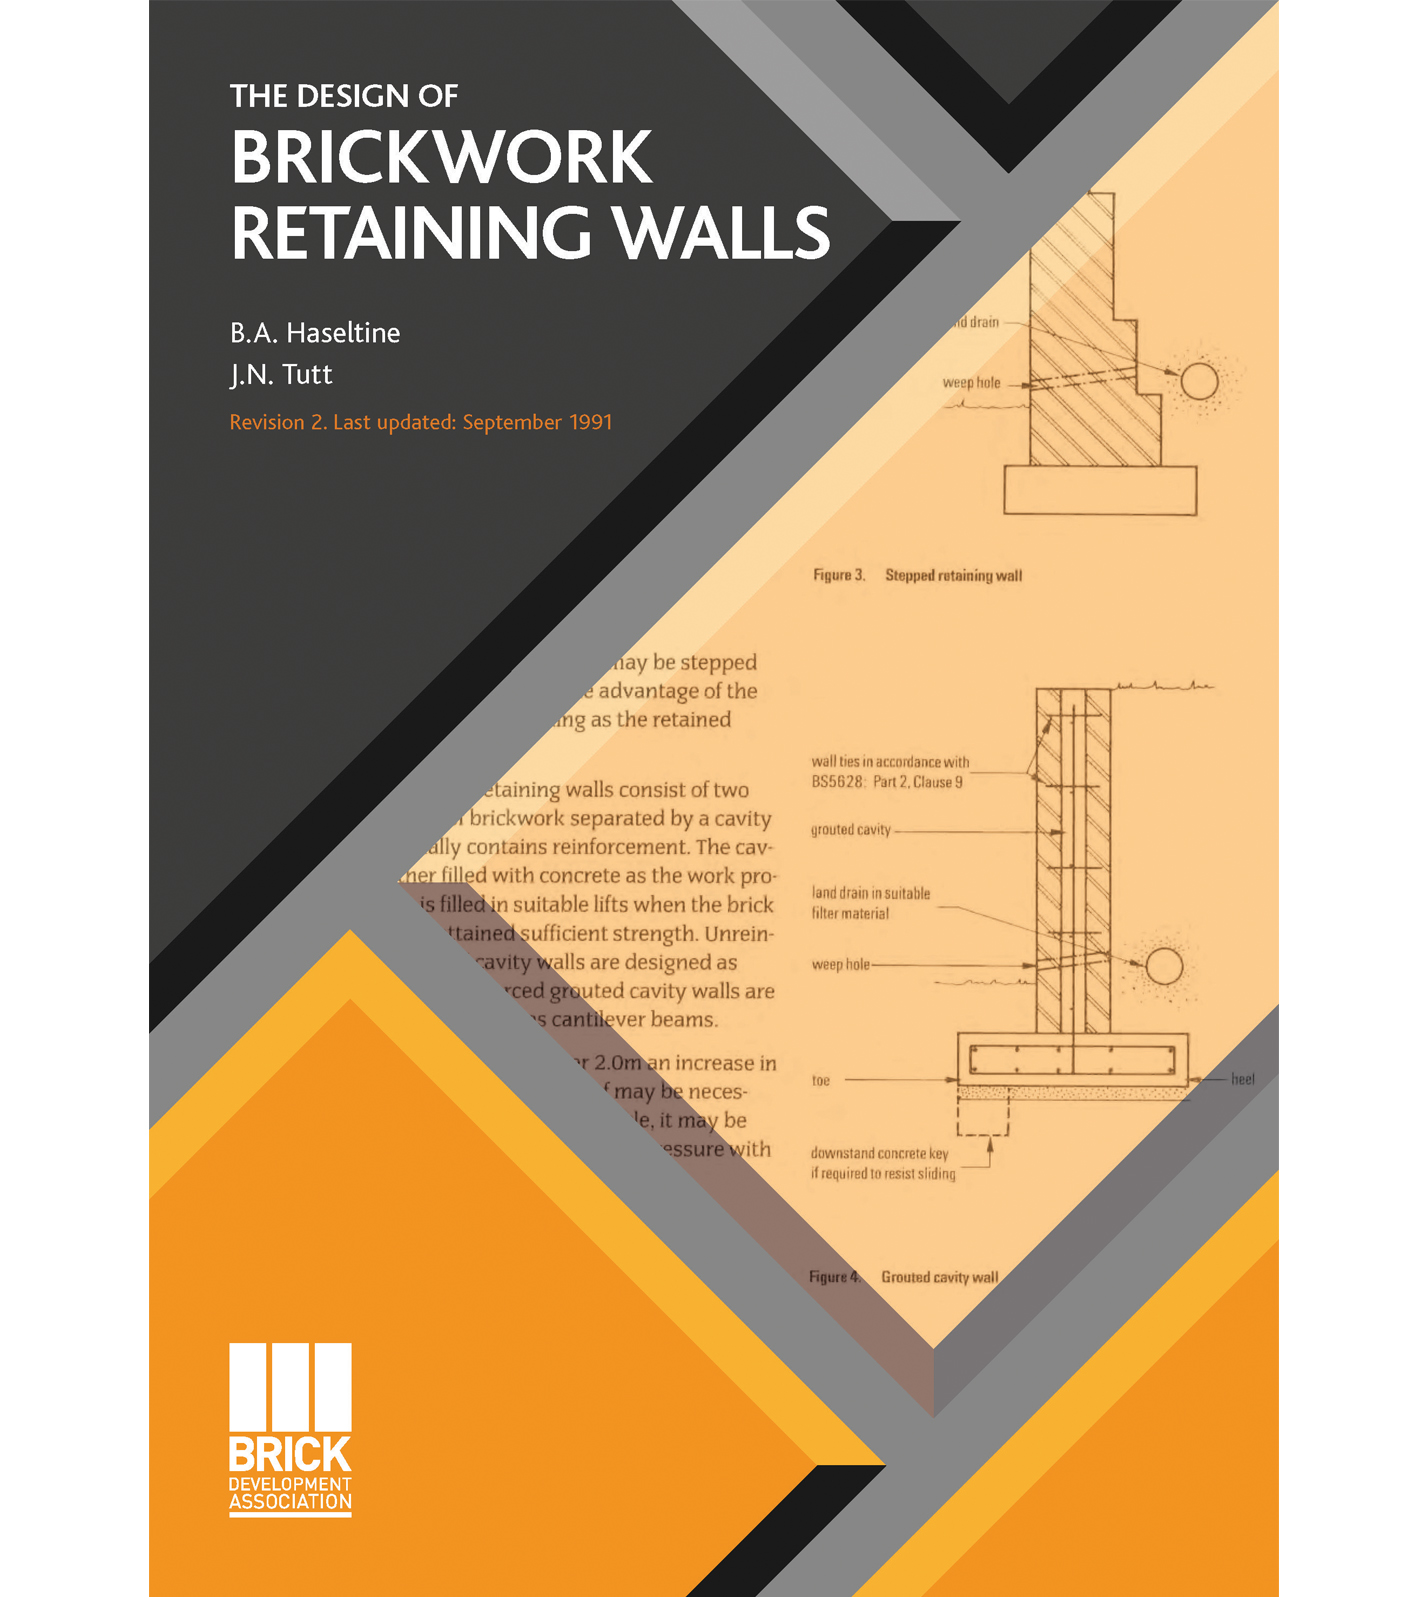 BRICKWORK RETAINING WALLS